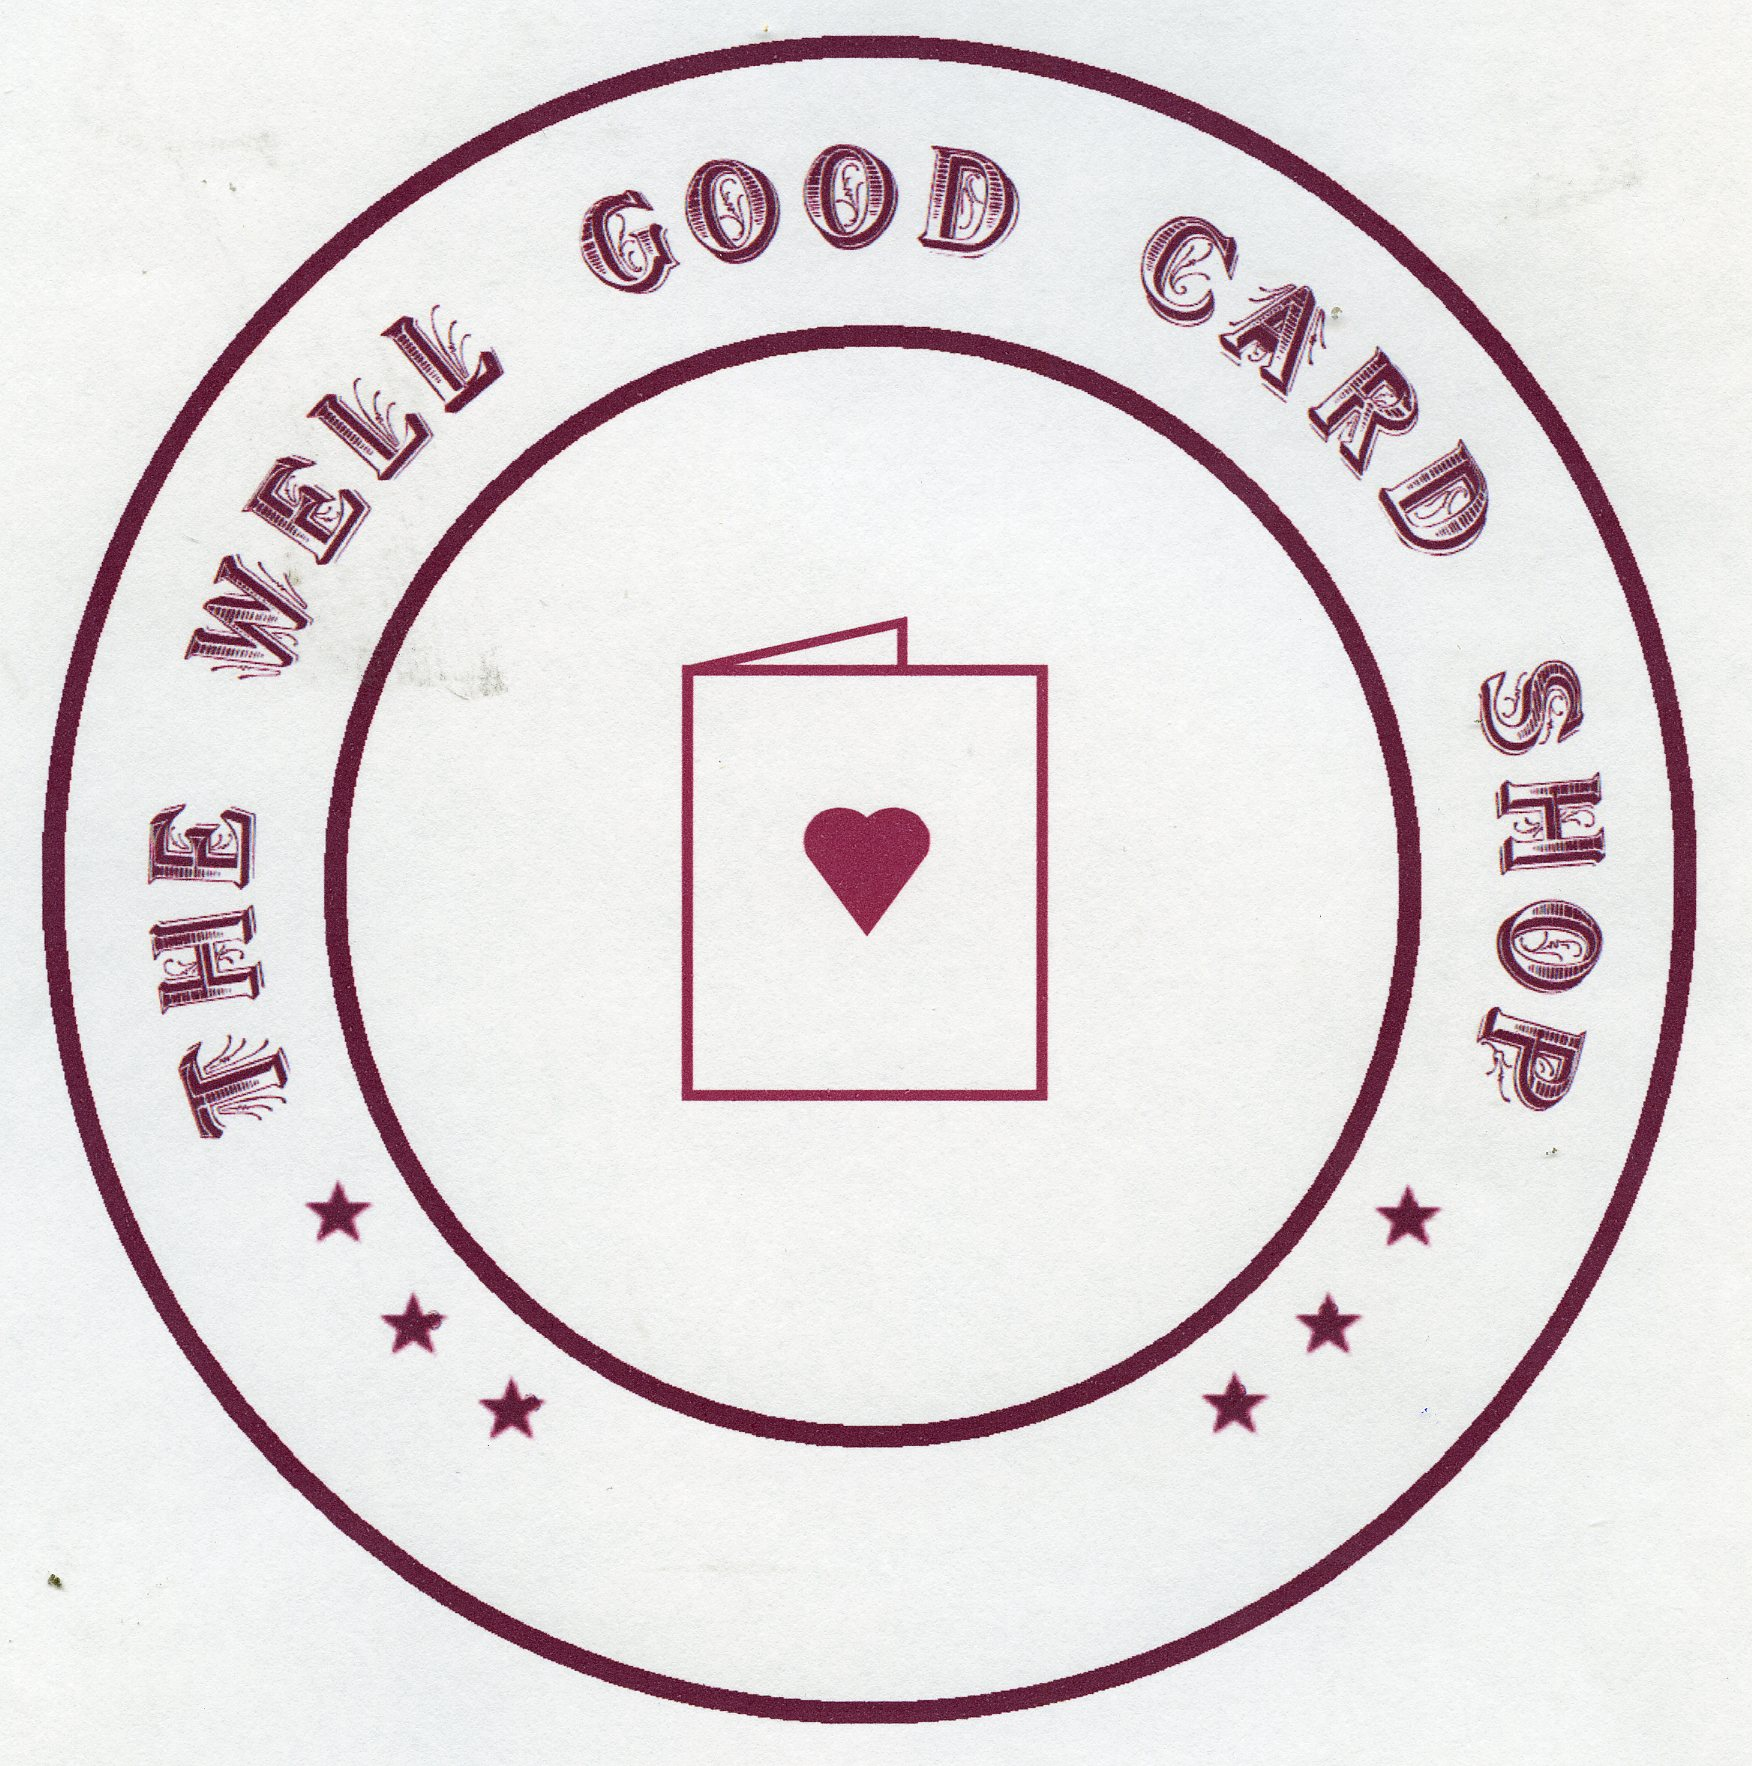 Above: A recent rebranding has seen the post office adopt a new trading name of The Well Good Card Shop.